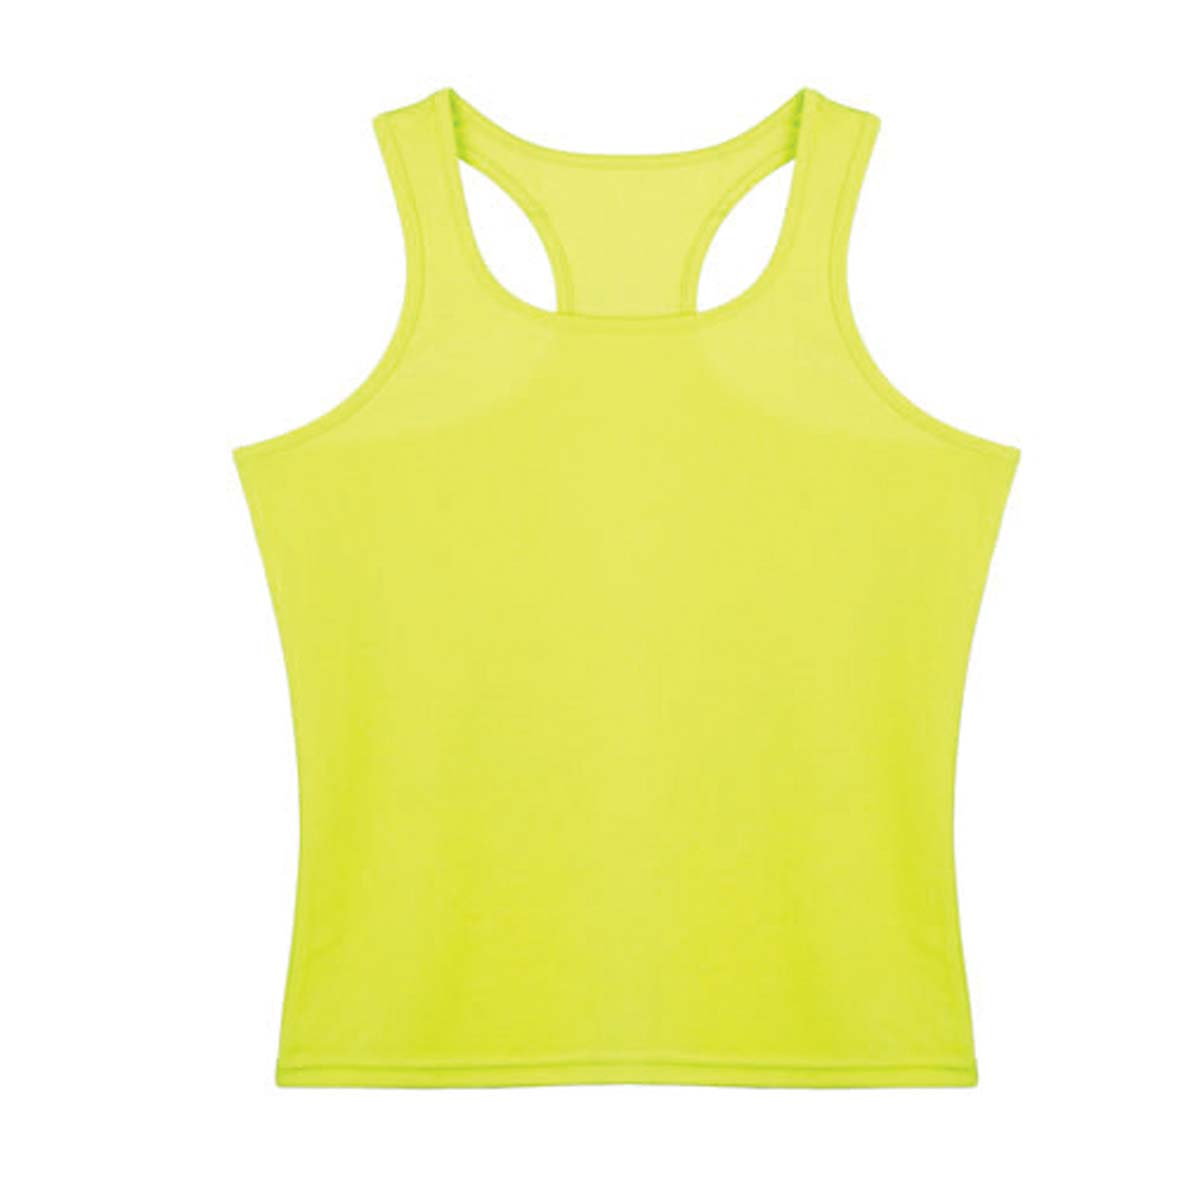 Gym t-shirt in fluorescent colours - Yellow fluorescent pf-473105f